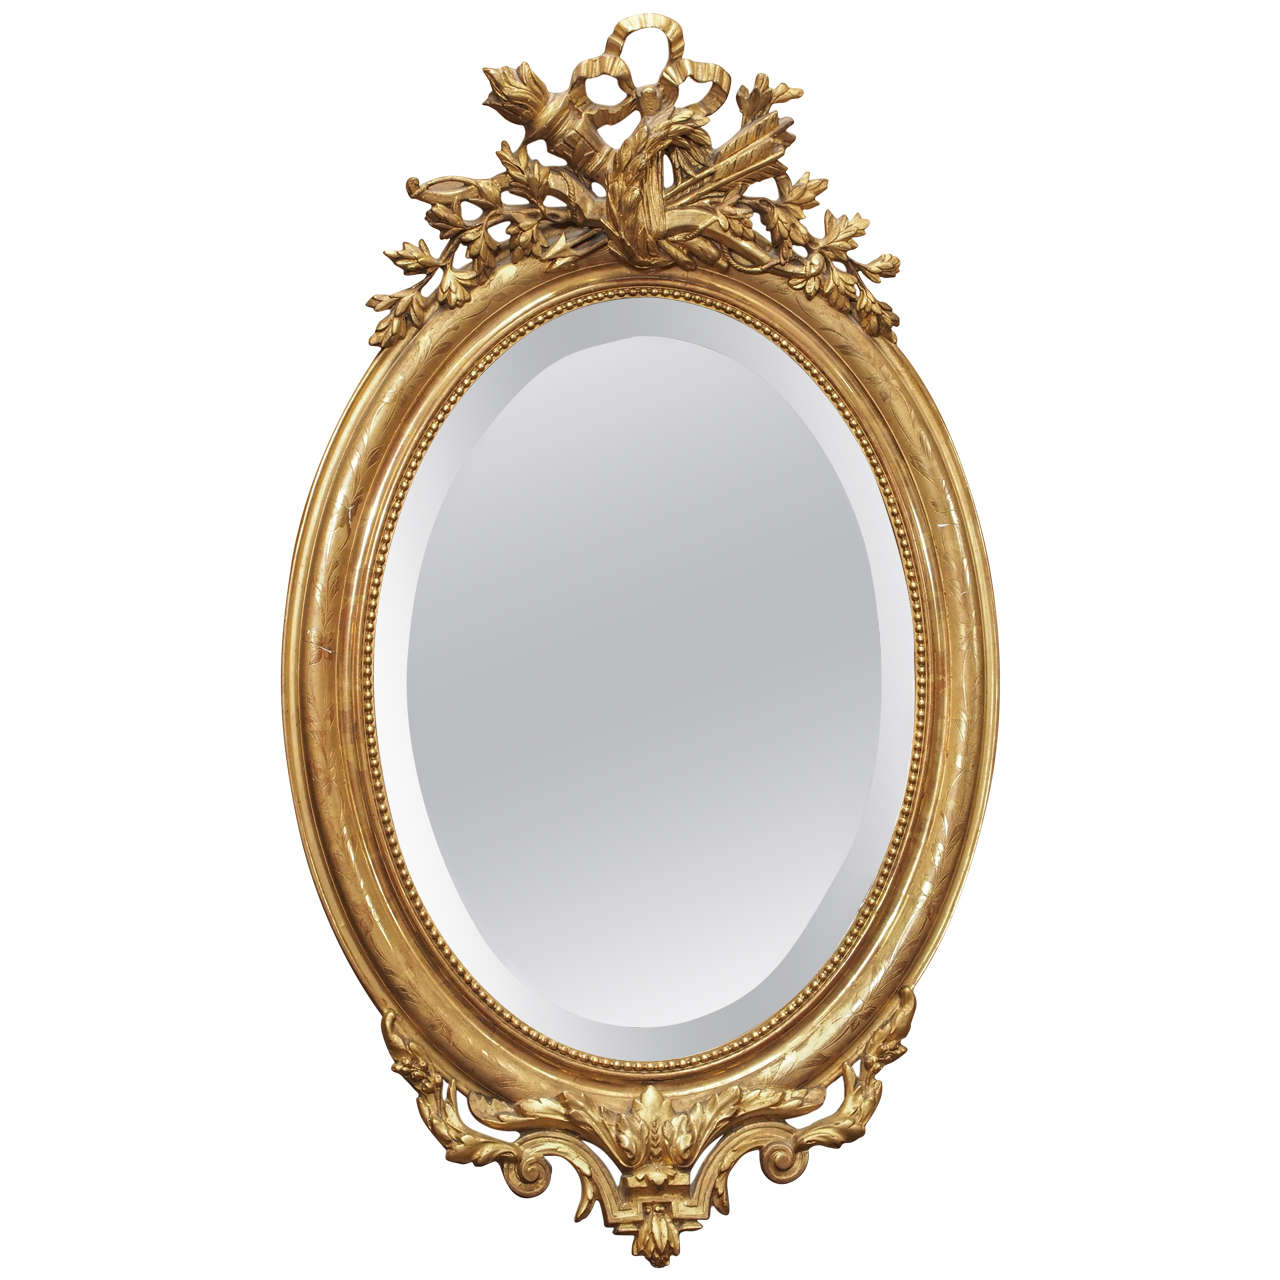 Lovely Oval Antique French Gold Beveled MIrror Circa 1850 For Sale